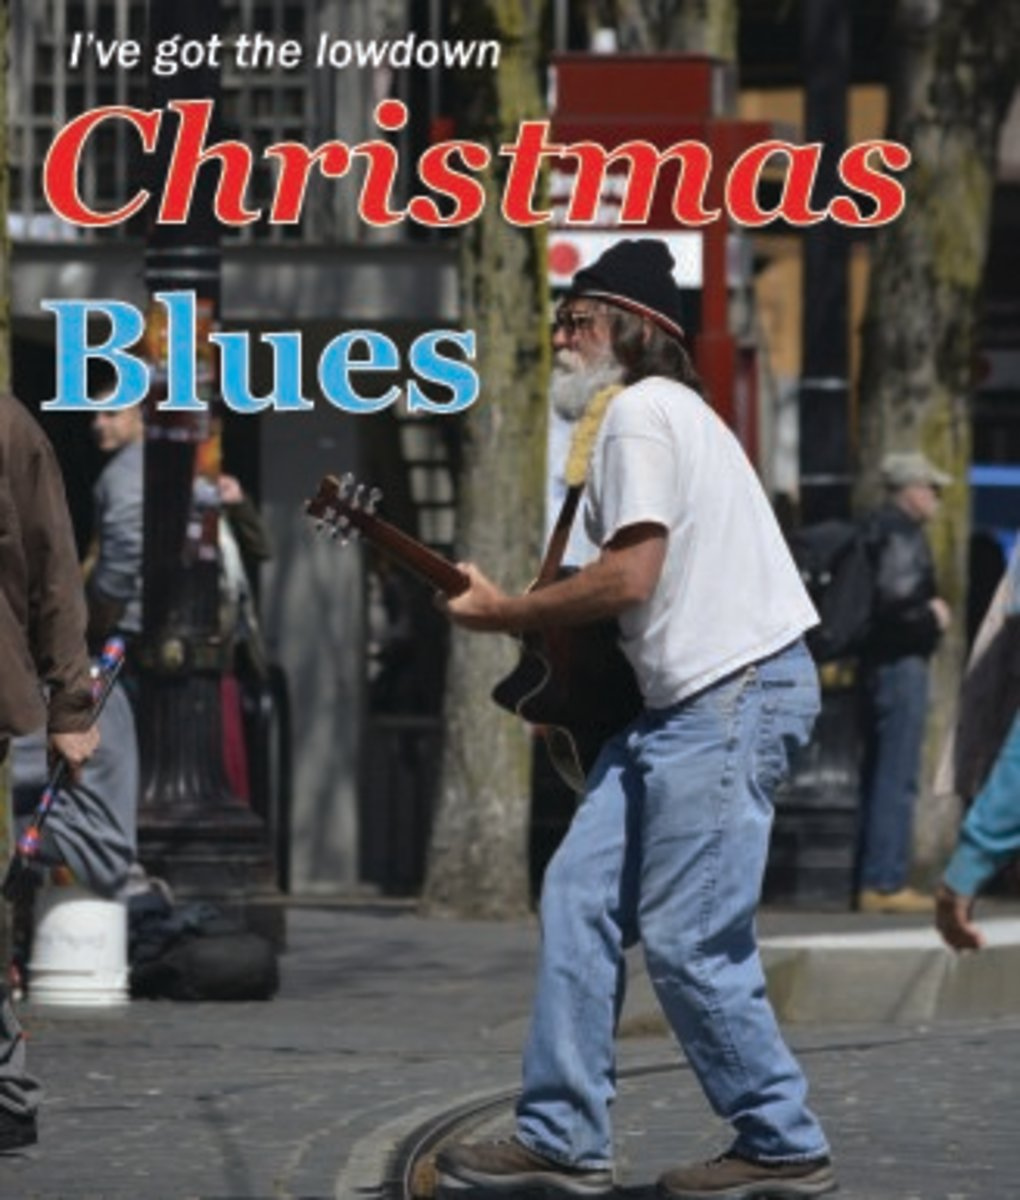 text added by the author - Blues Christmas Songs